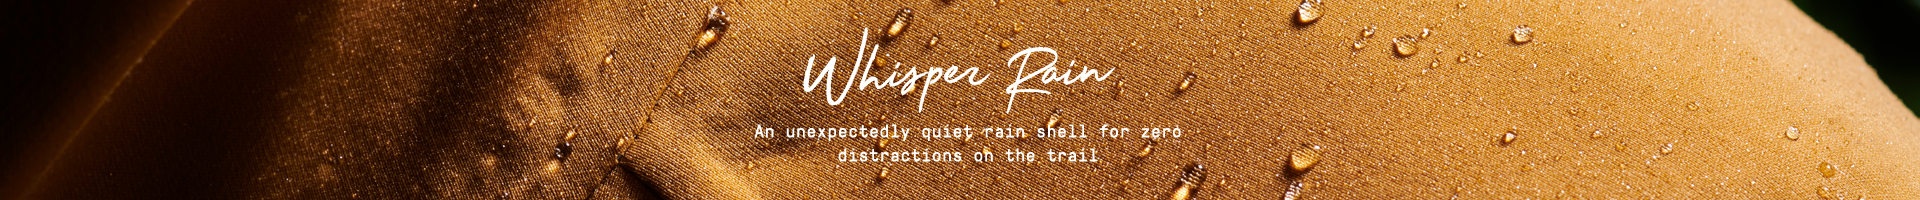 Whisper Rain, An unexpectedly quiet rain shell for zero distractions on the trail.